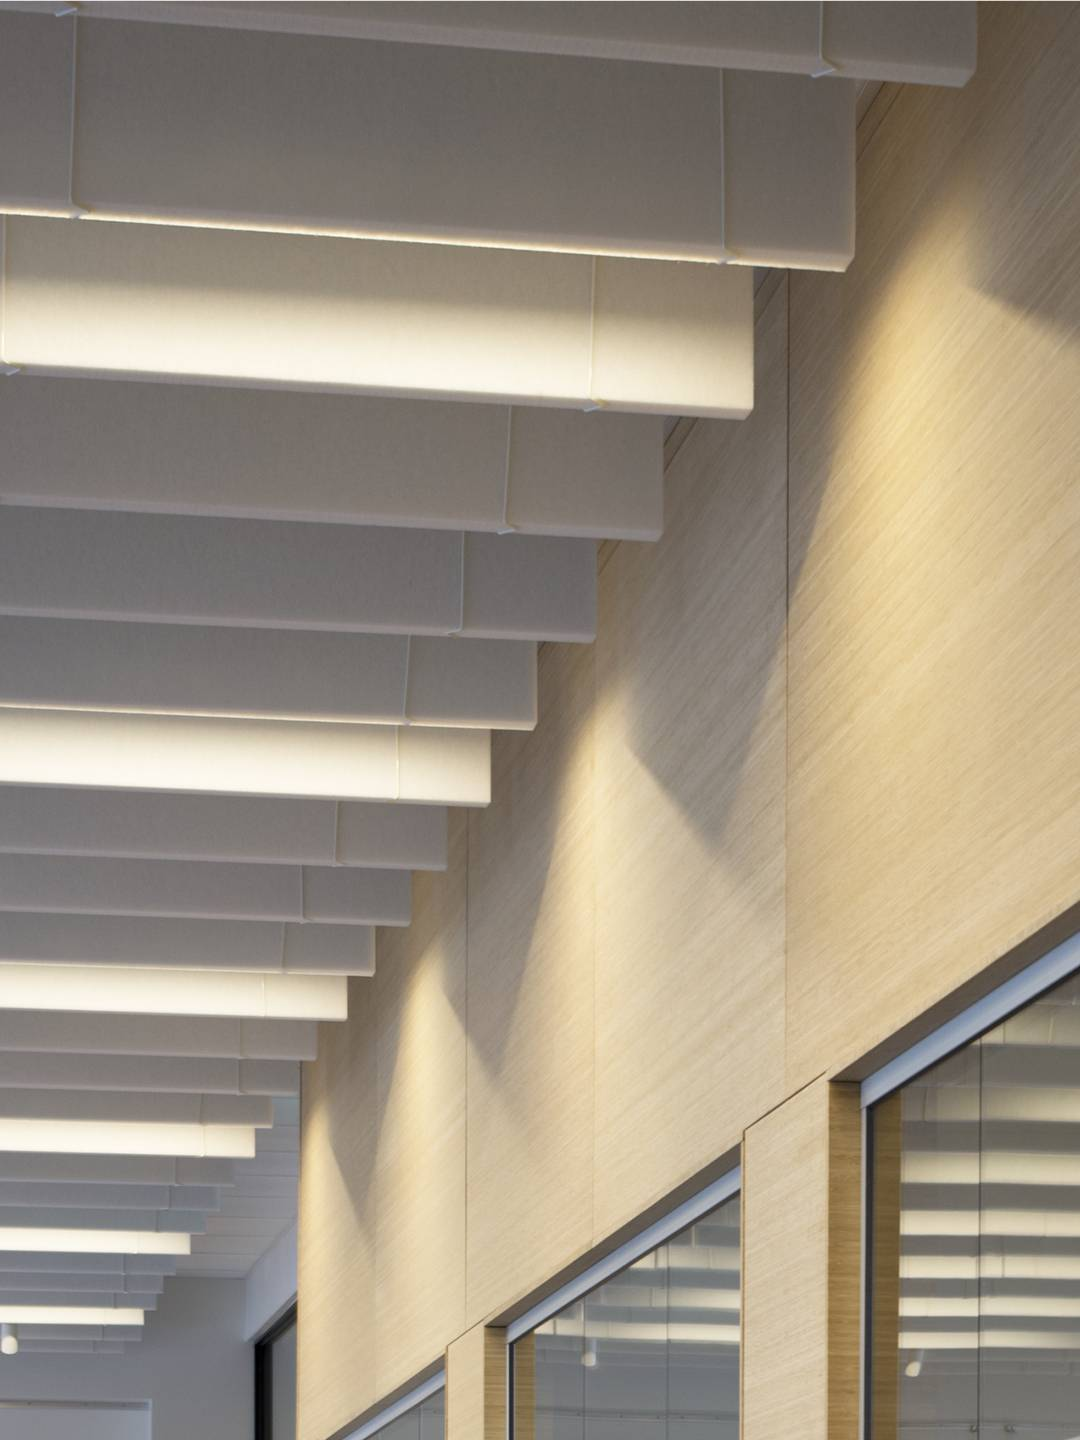 CELL OFFICE WALL WITH ACOUSTIC CEILING - Frontline Offices - SPOL Architects